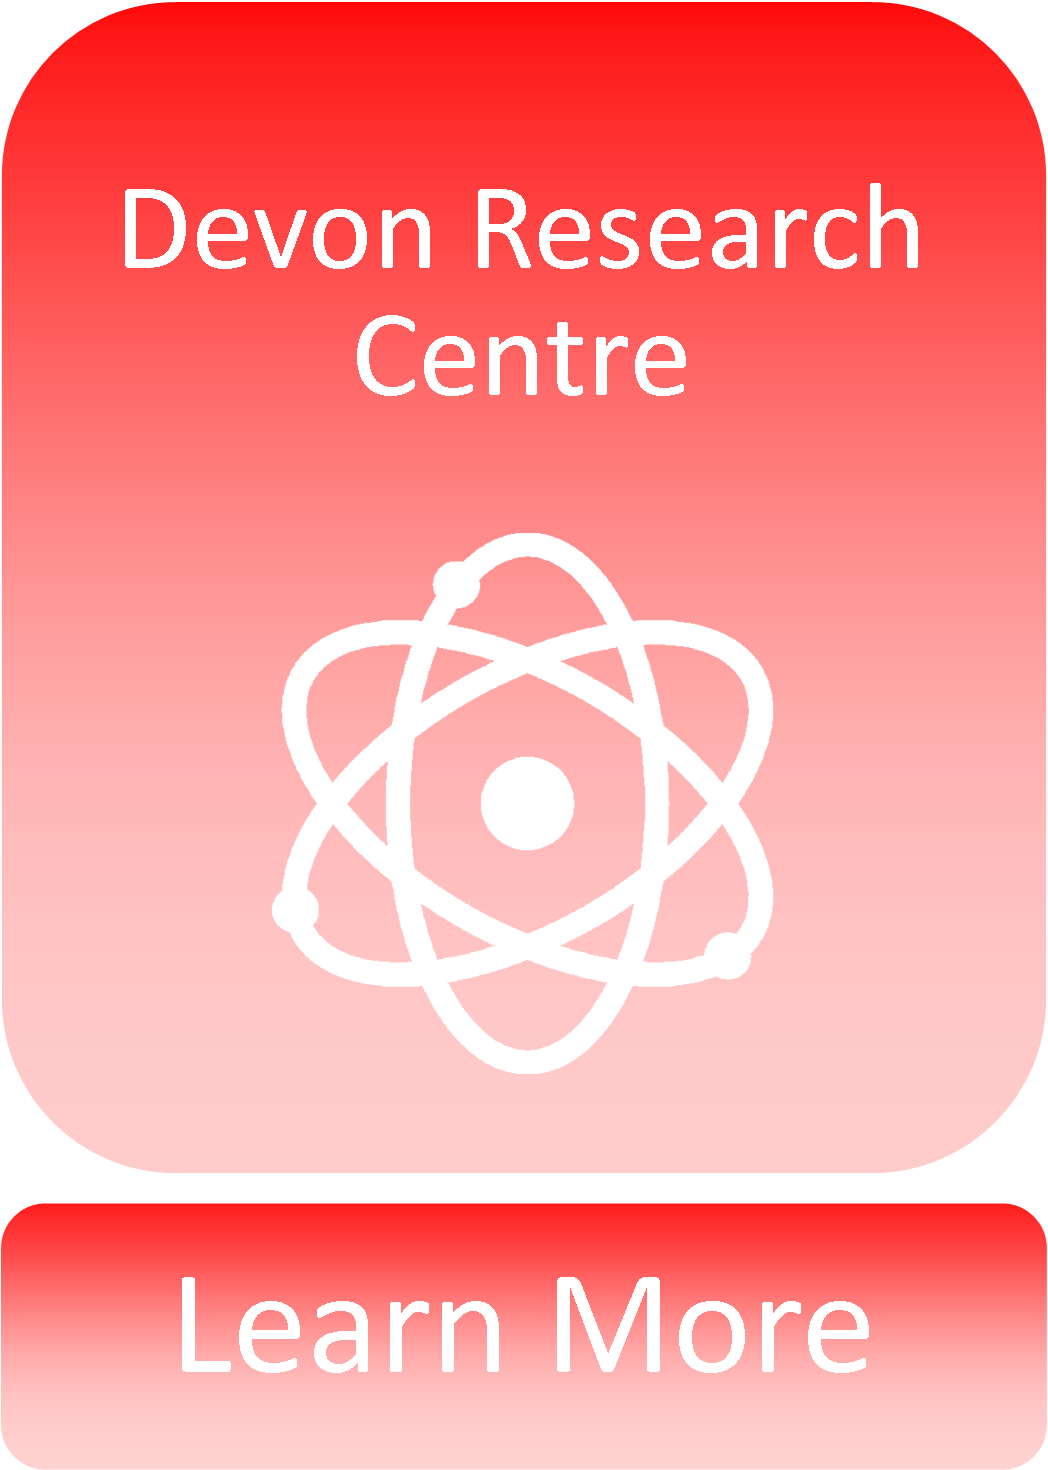 devon research centre